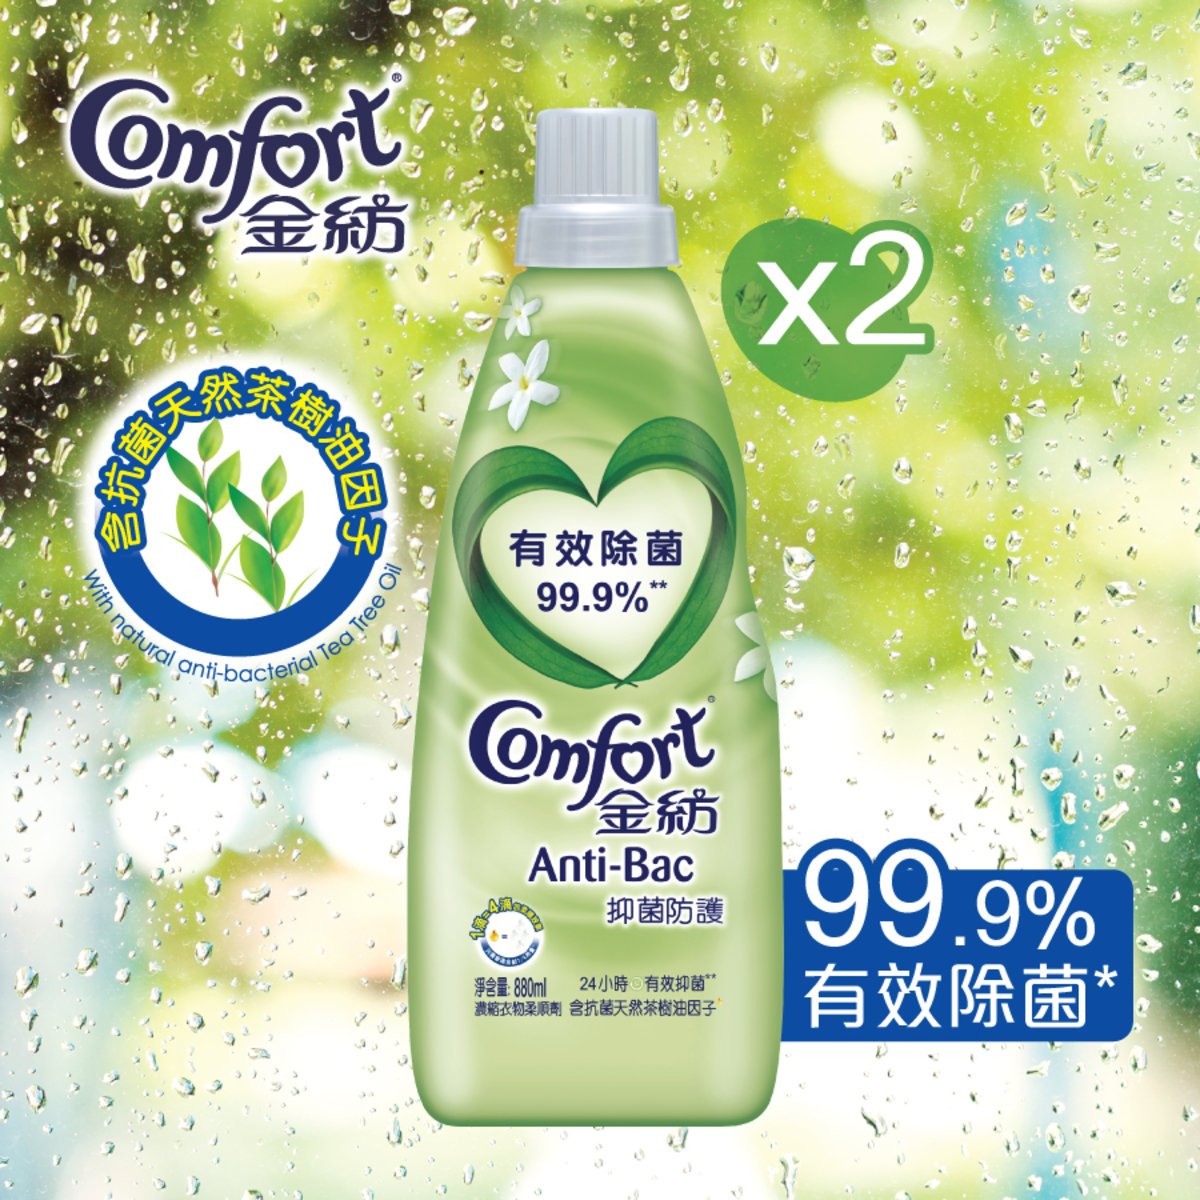 [Twin Pack] Comfort Fabric Softener Concentrate Essence - Anti-Bac